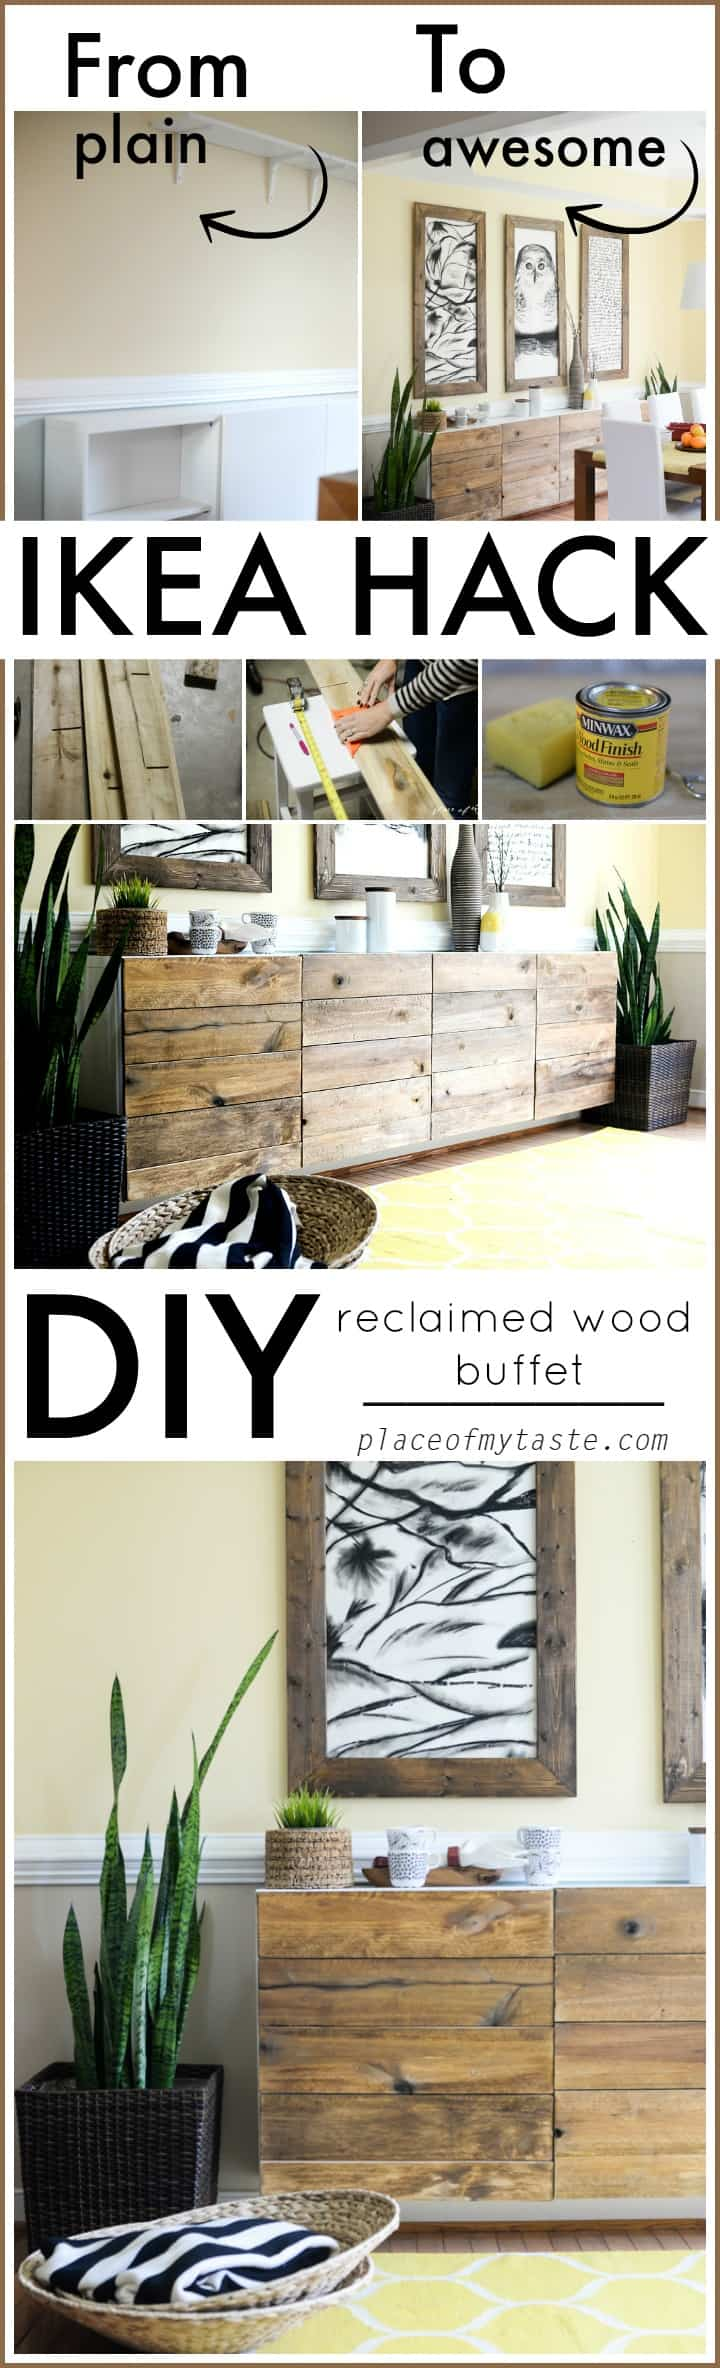 DIY RECLAIMED WOOD BUFET IKEA HACK